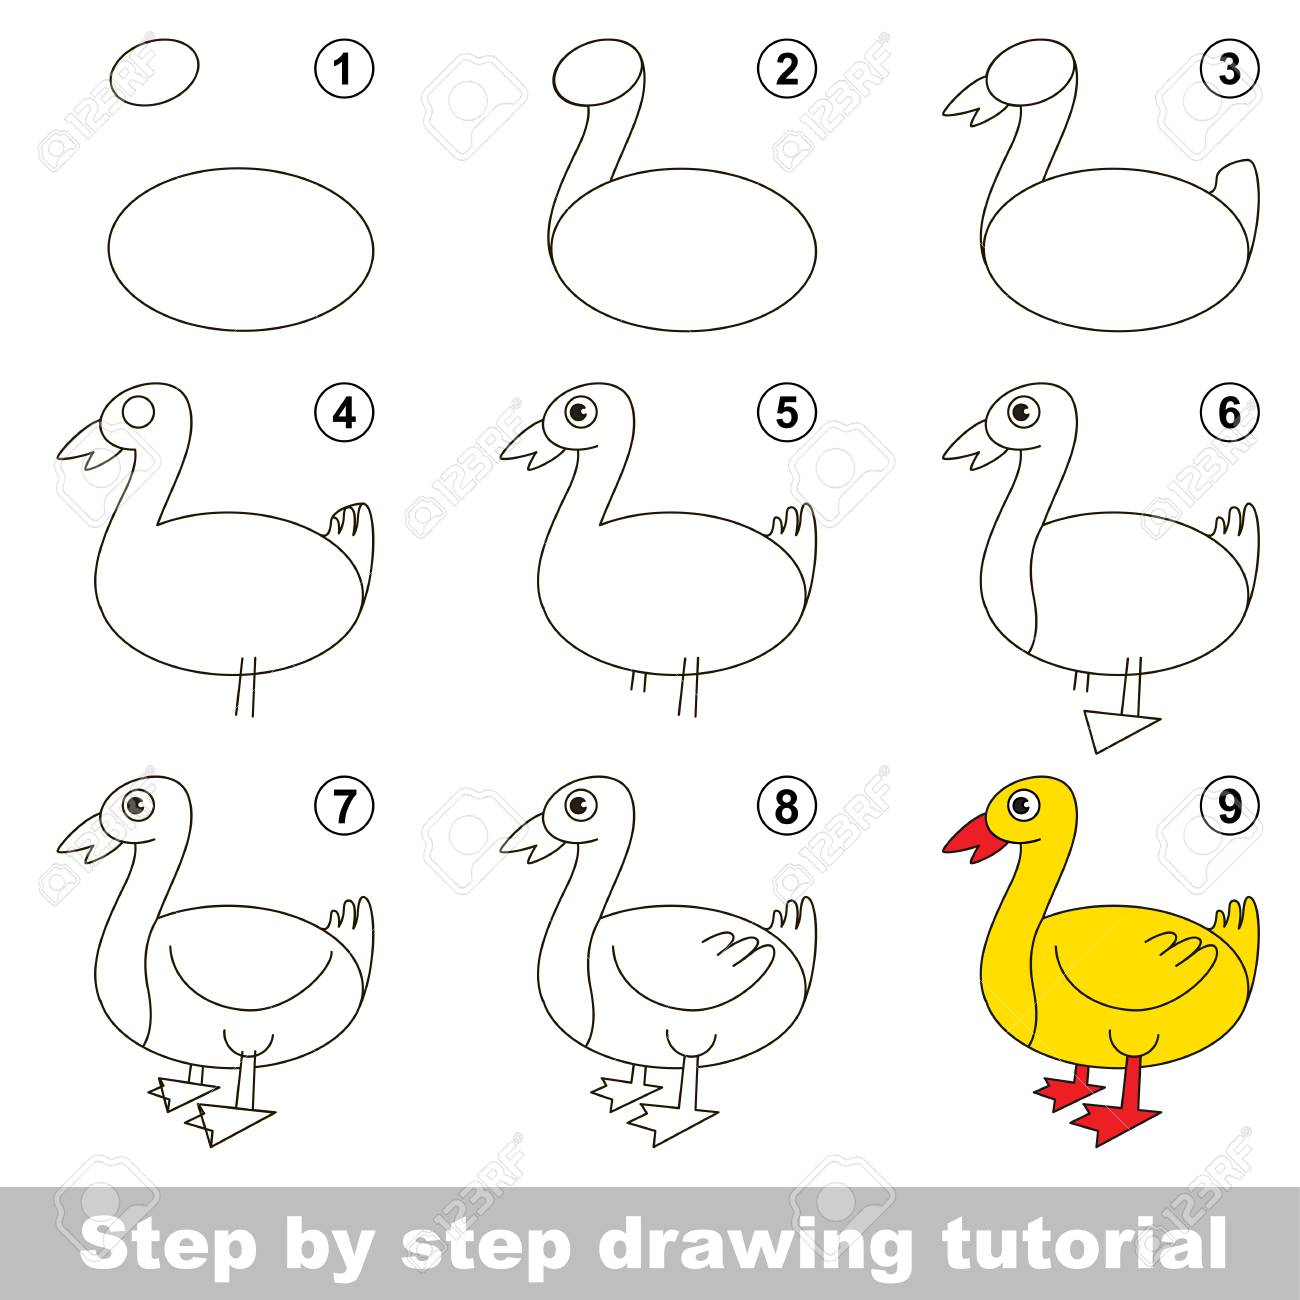 Kid Game To Develop Drawing Skill With Easy Gaming Level For